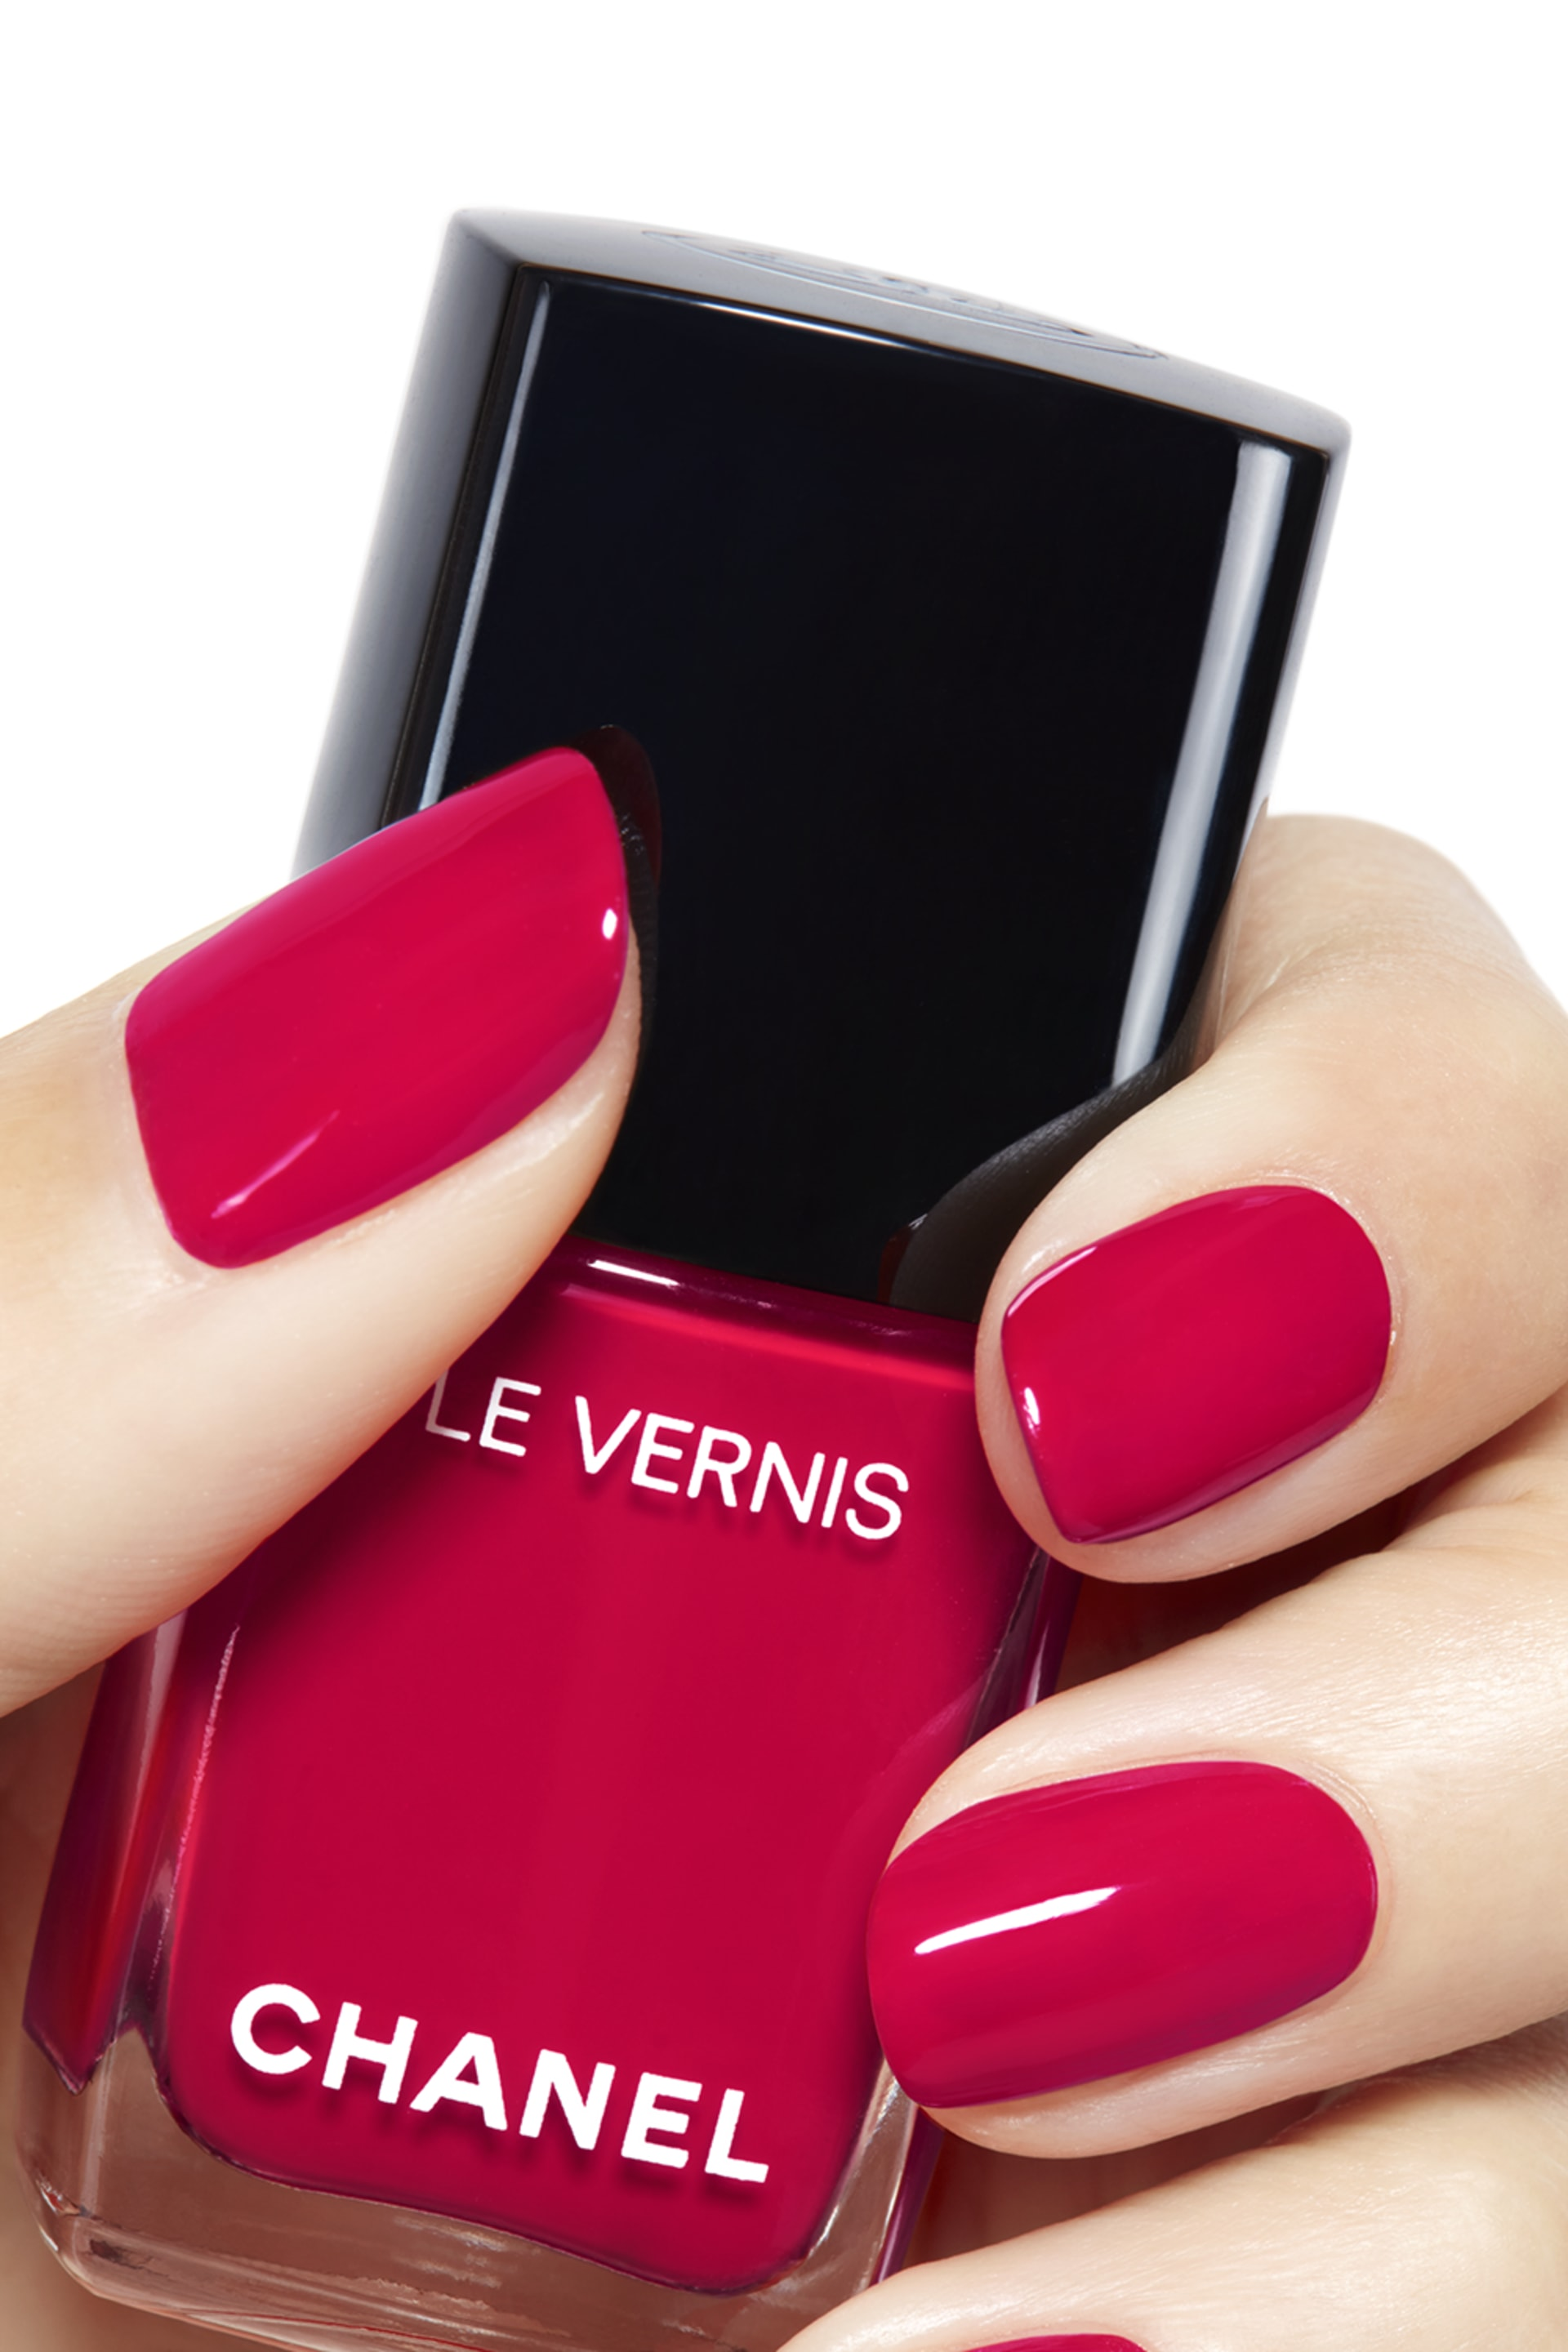 Application makeup visual 2 - LE VERNIS 626 - EXQUISITE PINK